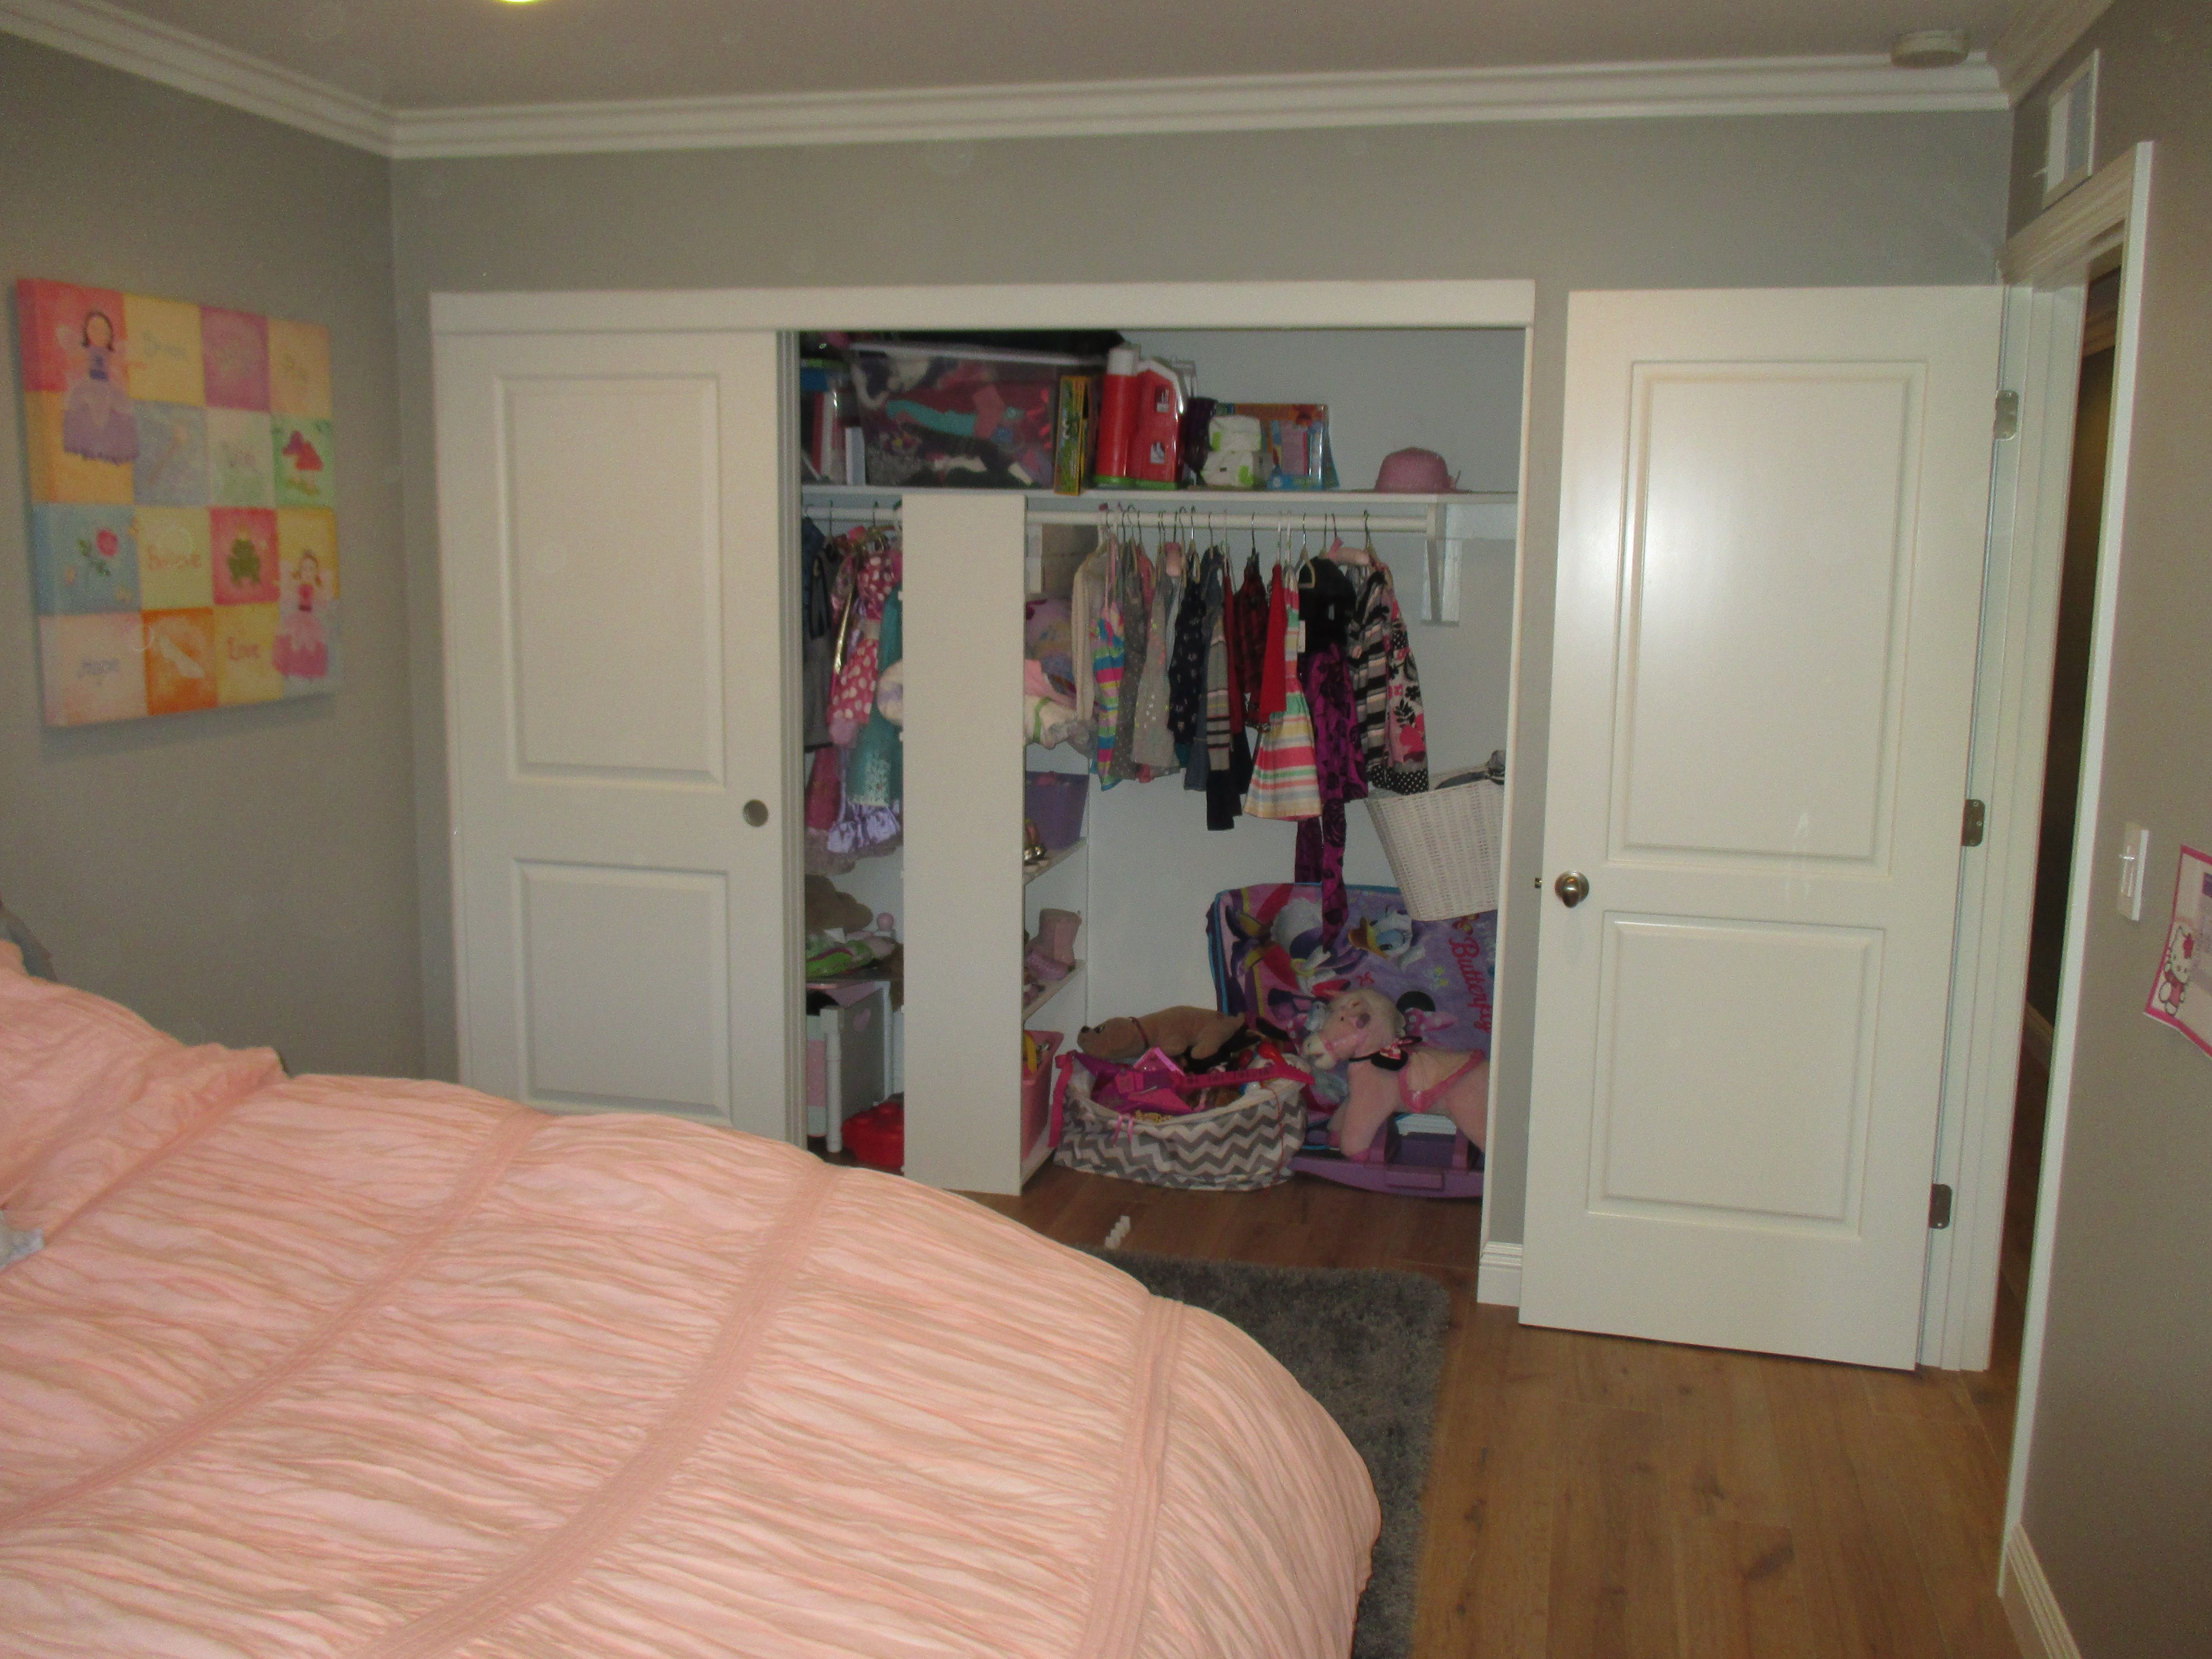 Big Closet Look Through Your Clothes With Ease Sliding Any One Of